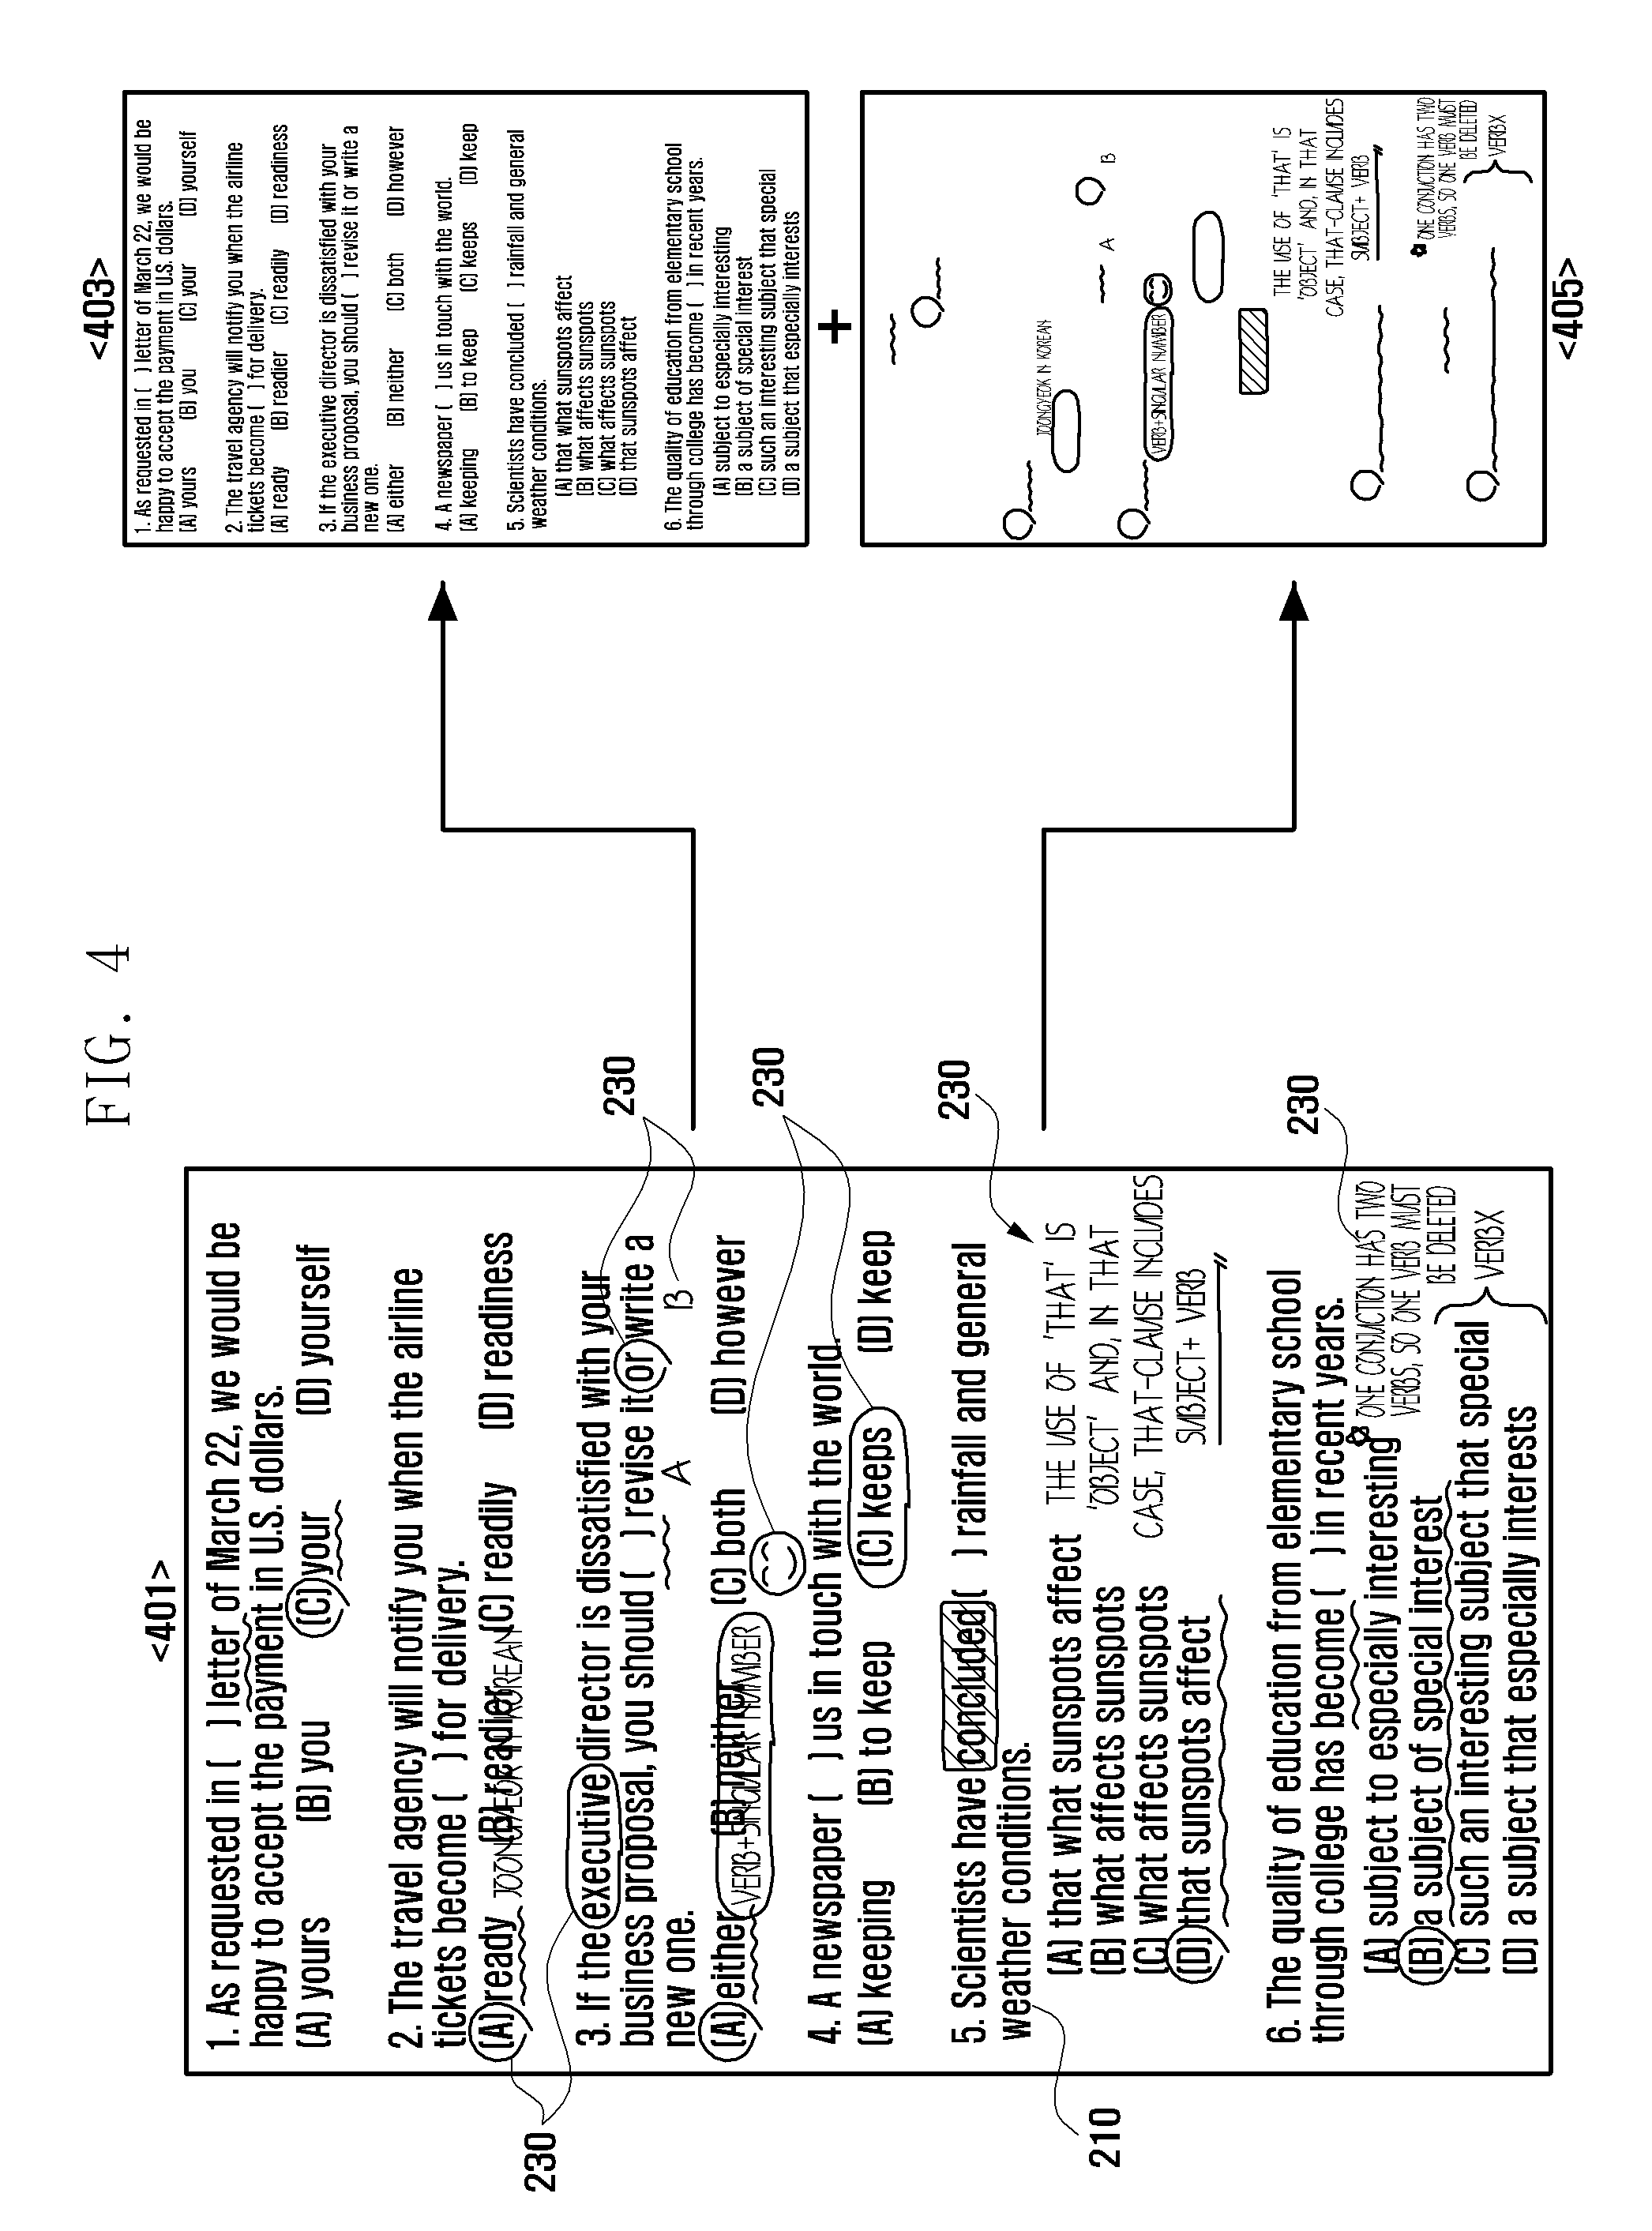 US9164974B2 - Method and apparatus for providing an